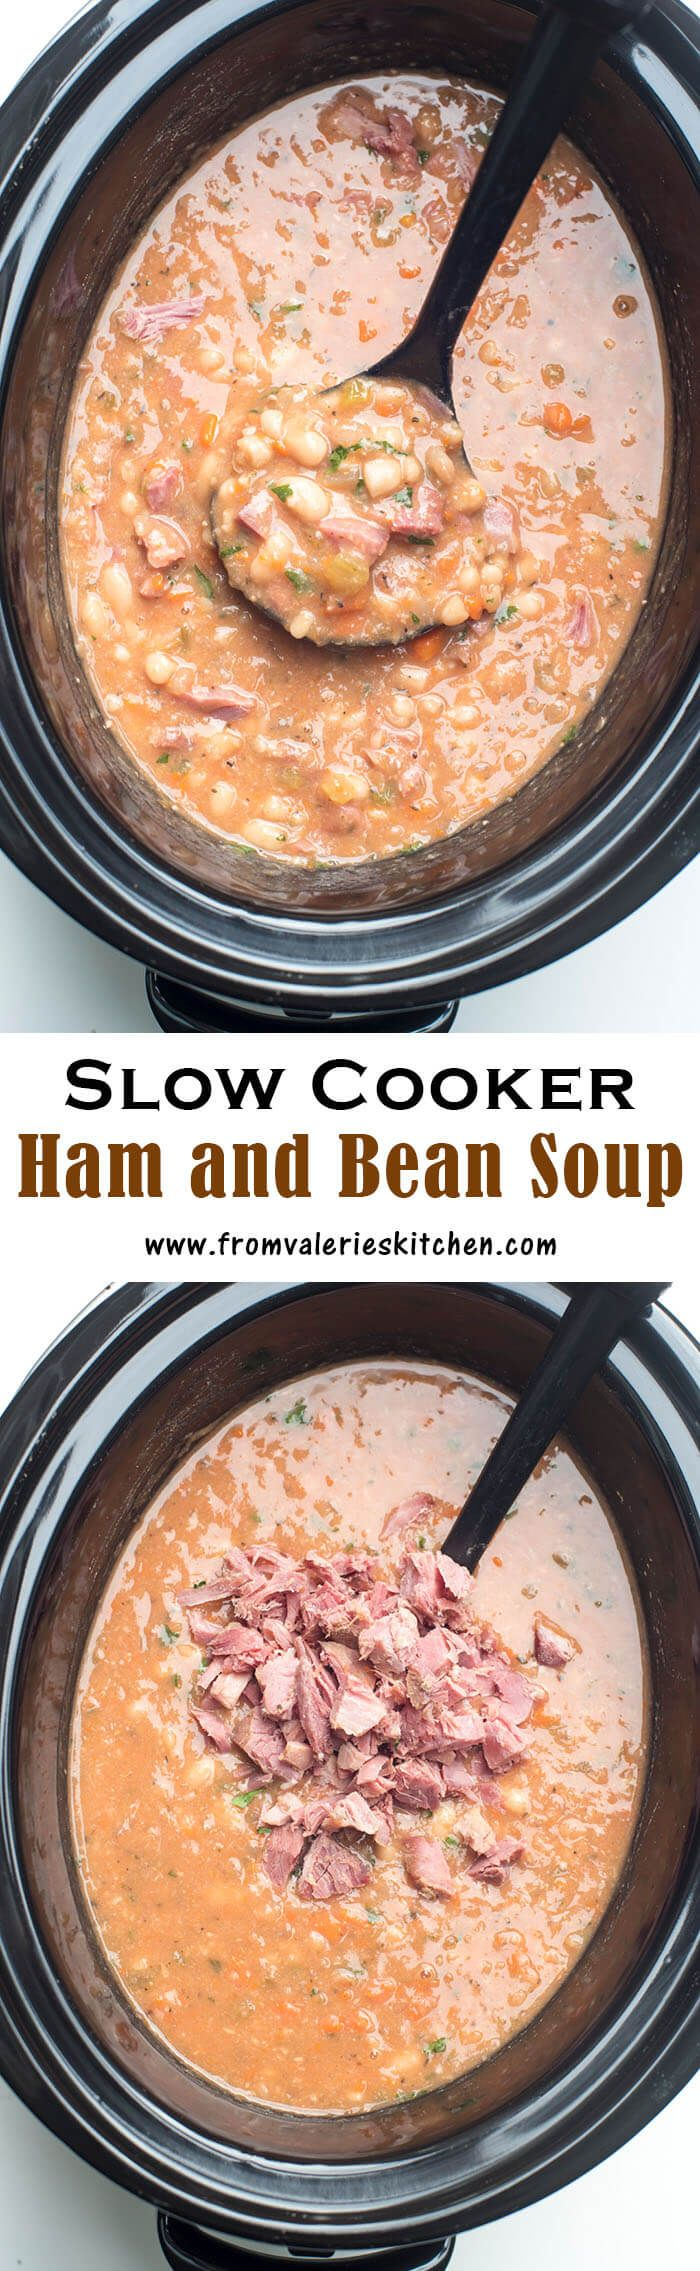 A great way to make use of the ham bone from your holiday ham. This Slow Cooker Ha